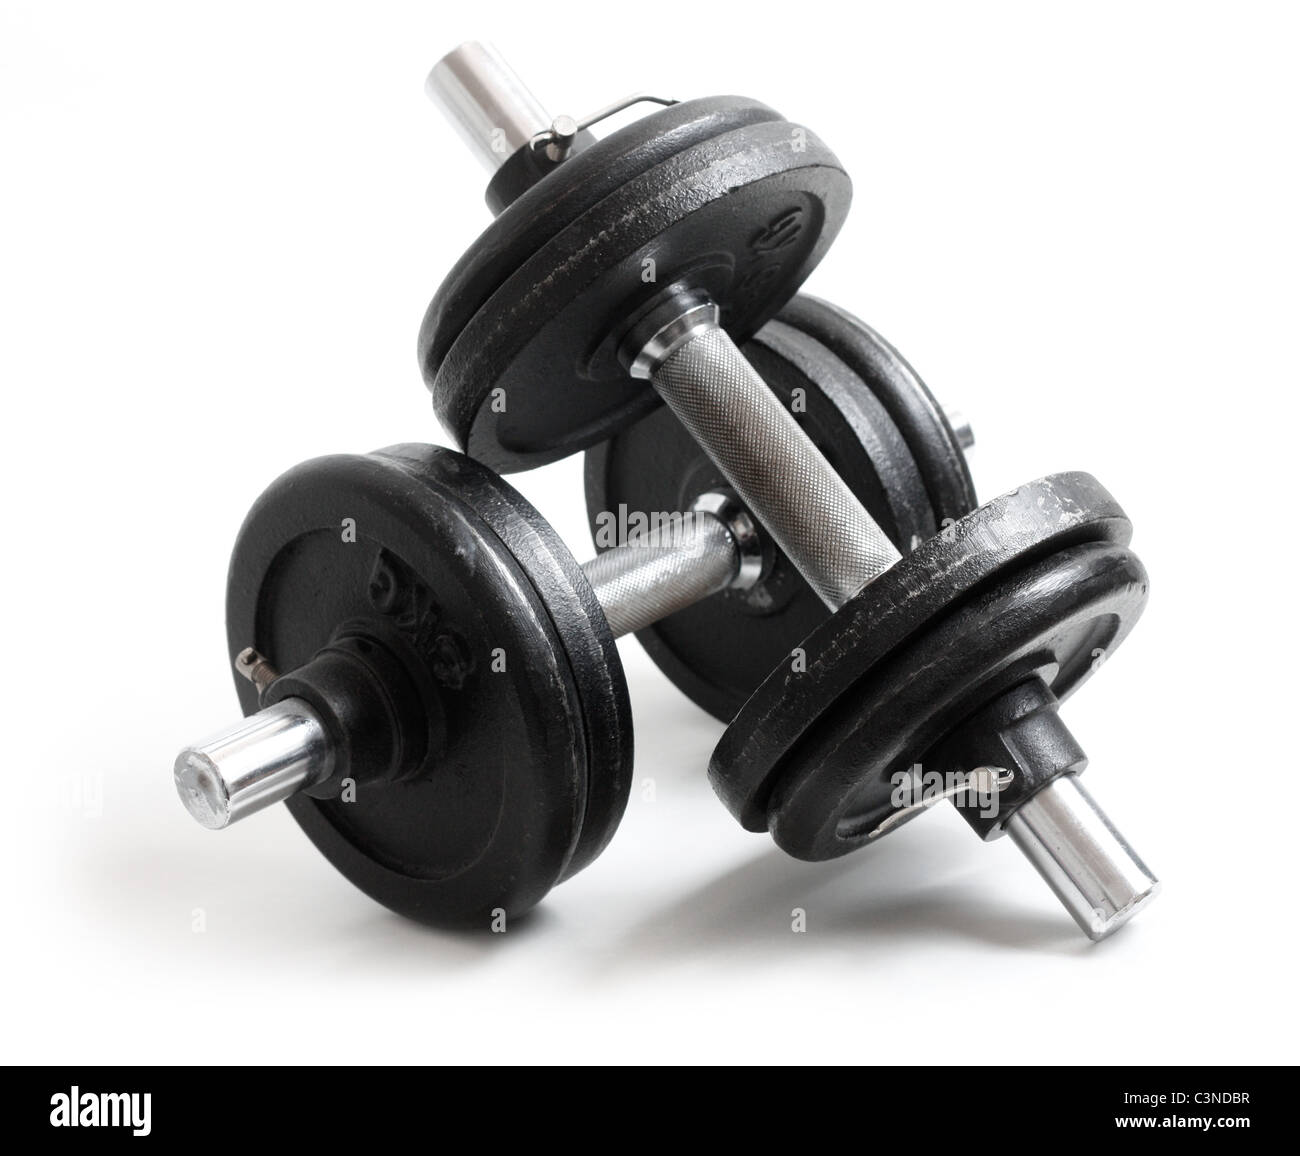 Weights - Stock Image